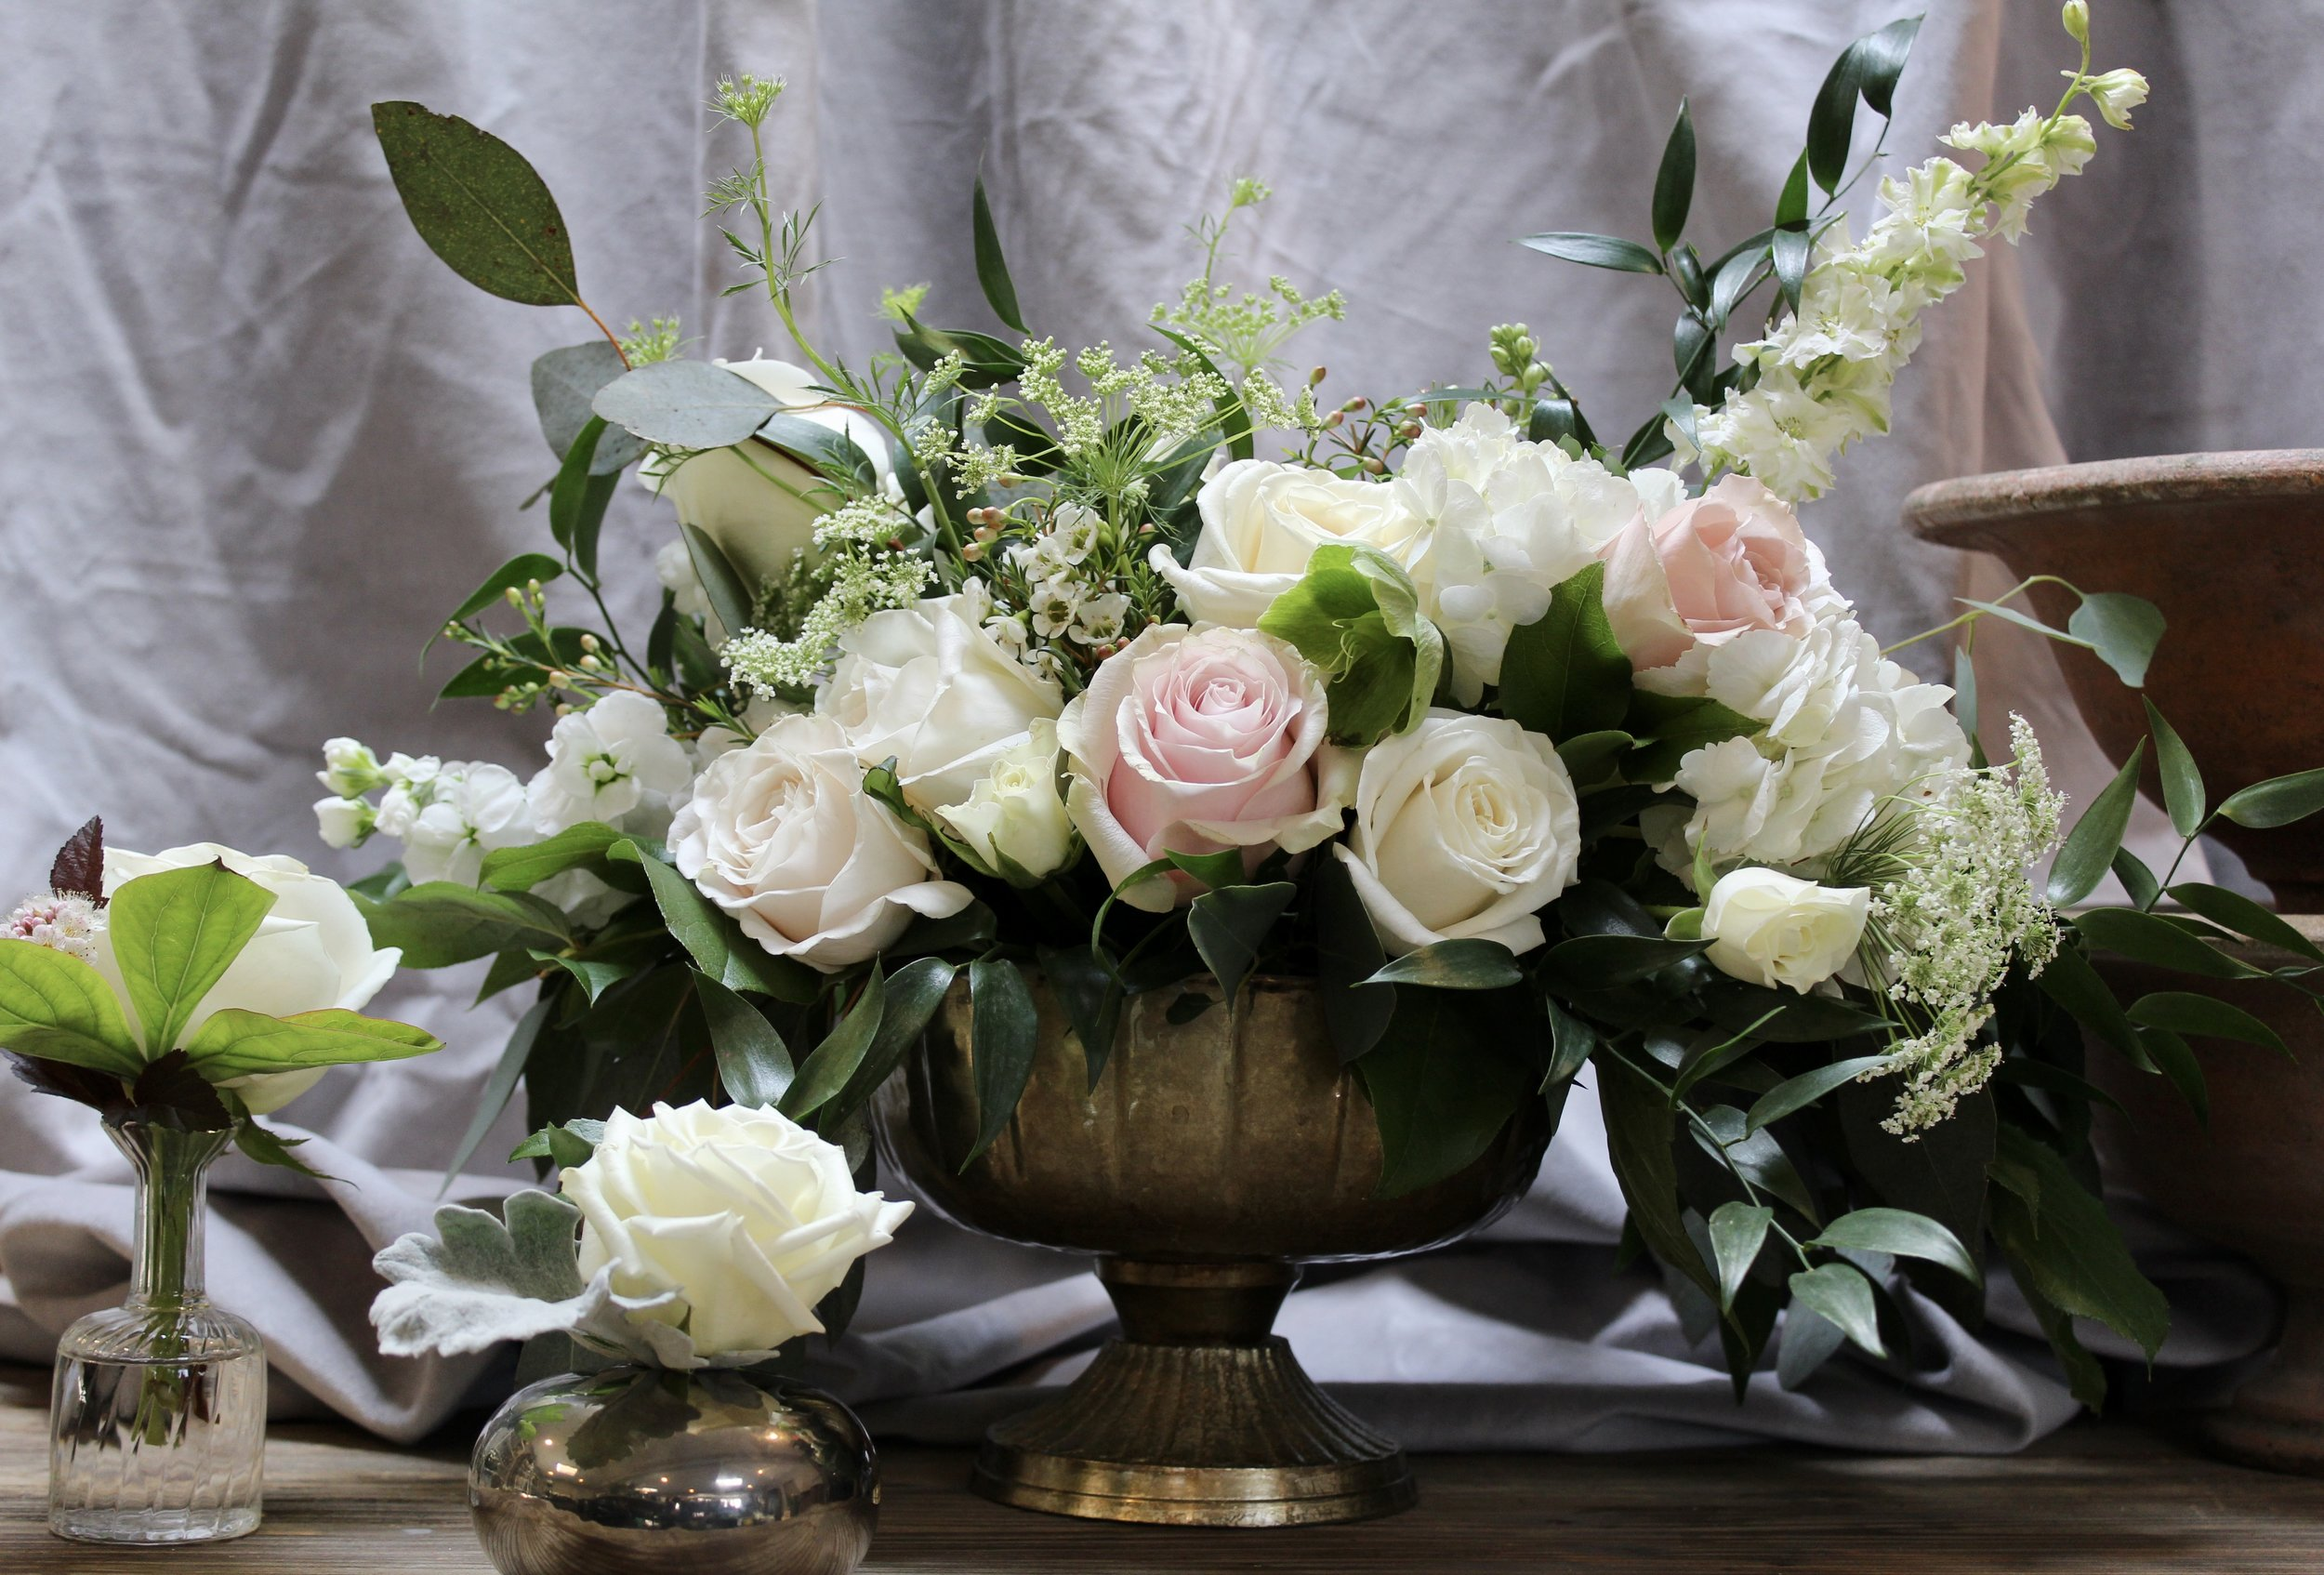 Yellow Canary Floral & Design Studio wedding floral arrangement with white and blush roses and wildflowers.